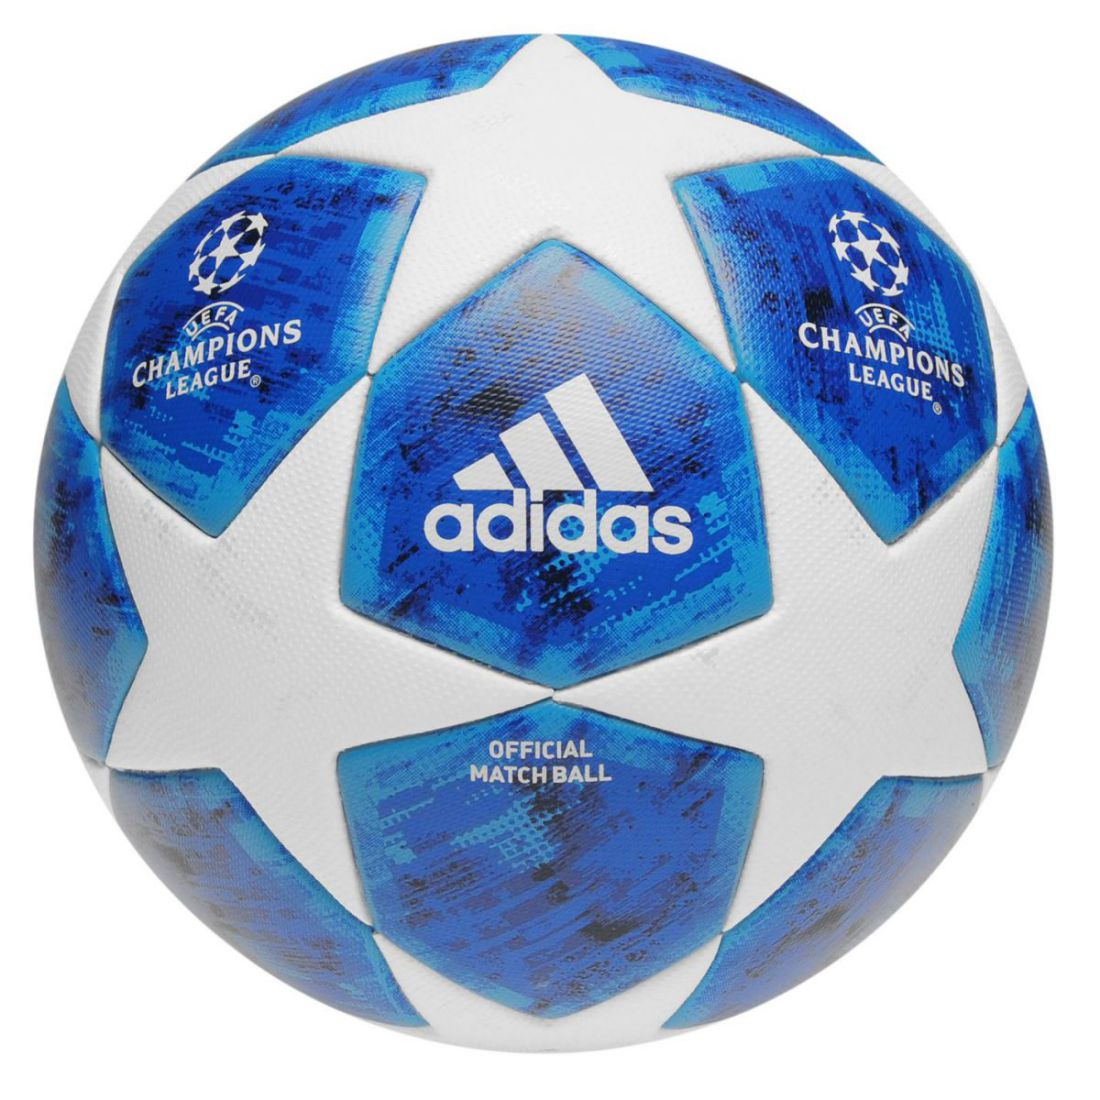 adidas Finale 18 UEFA Champions League Official Match Ball Football ... 1d23d5c5f2